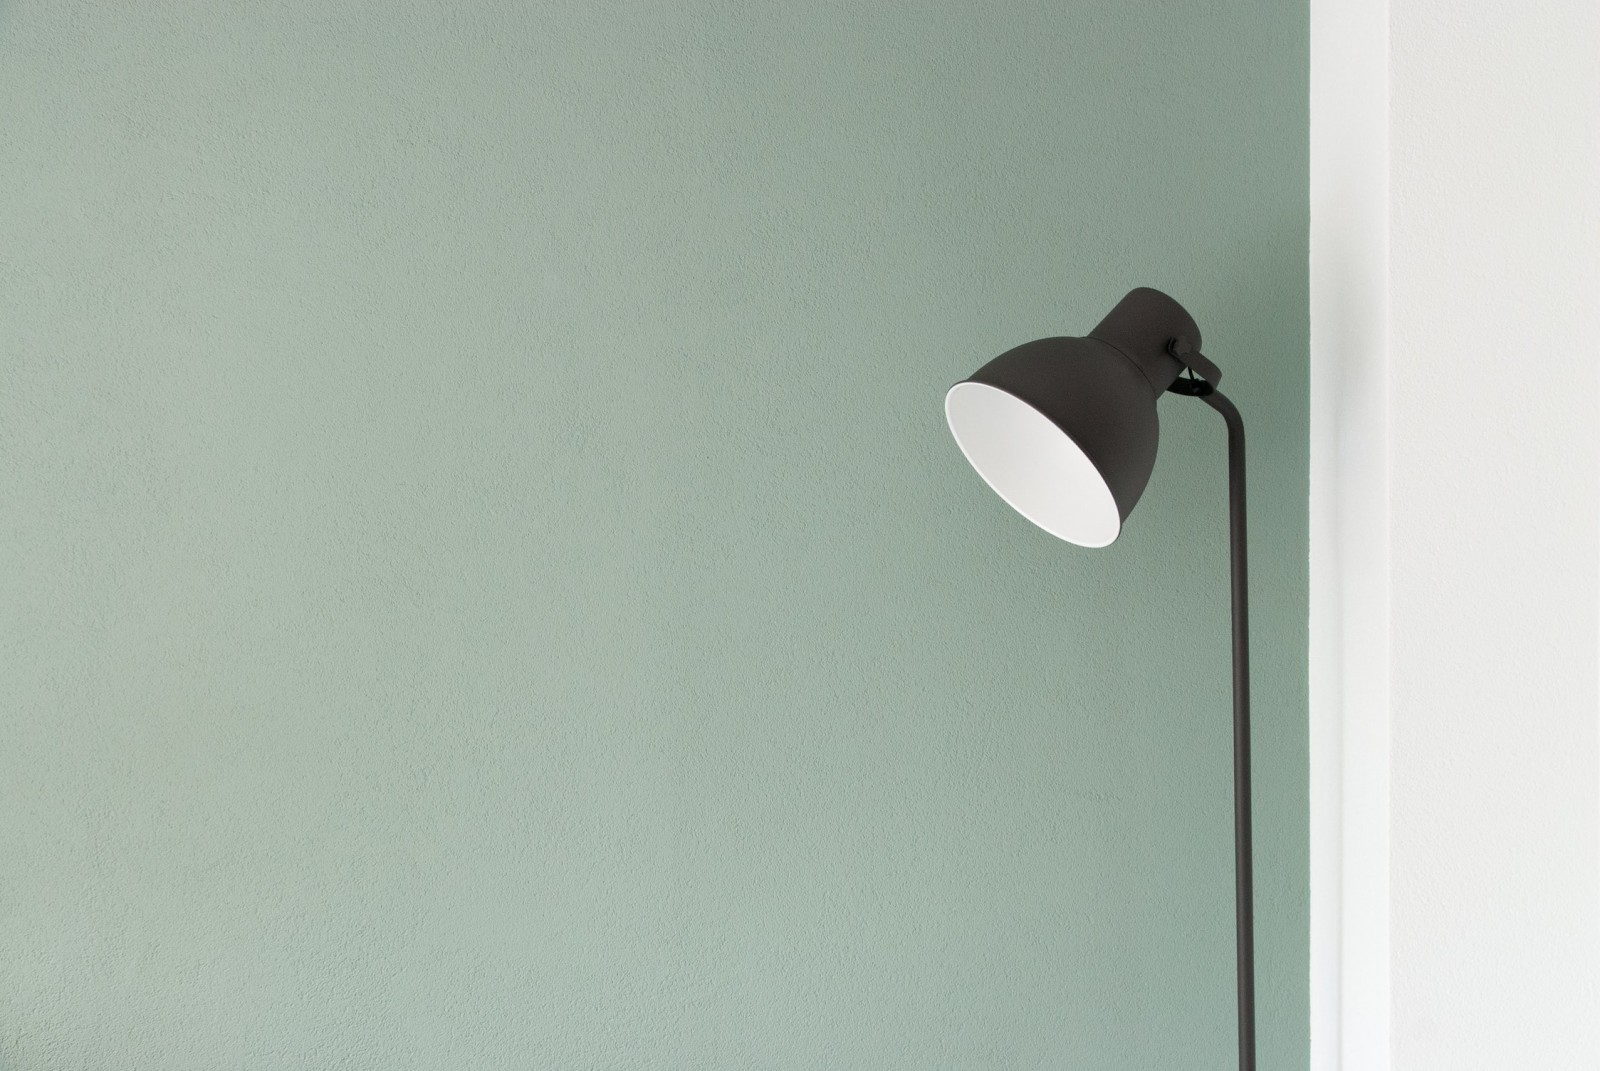 Lamp - How to Brighten a Room - Shuttersouth